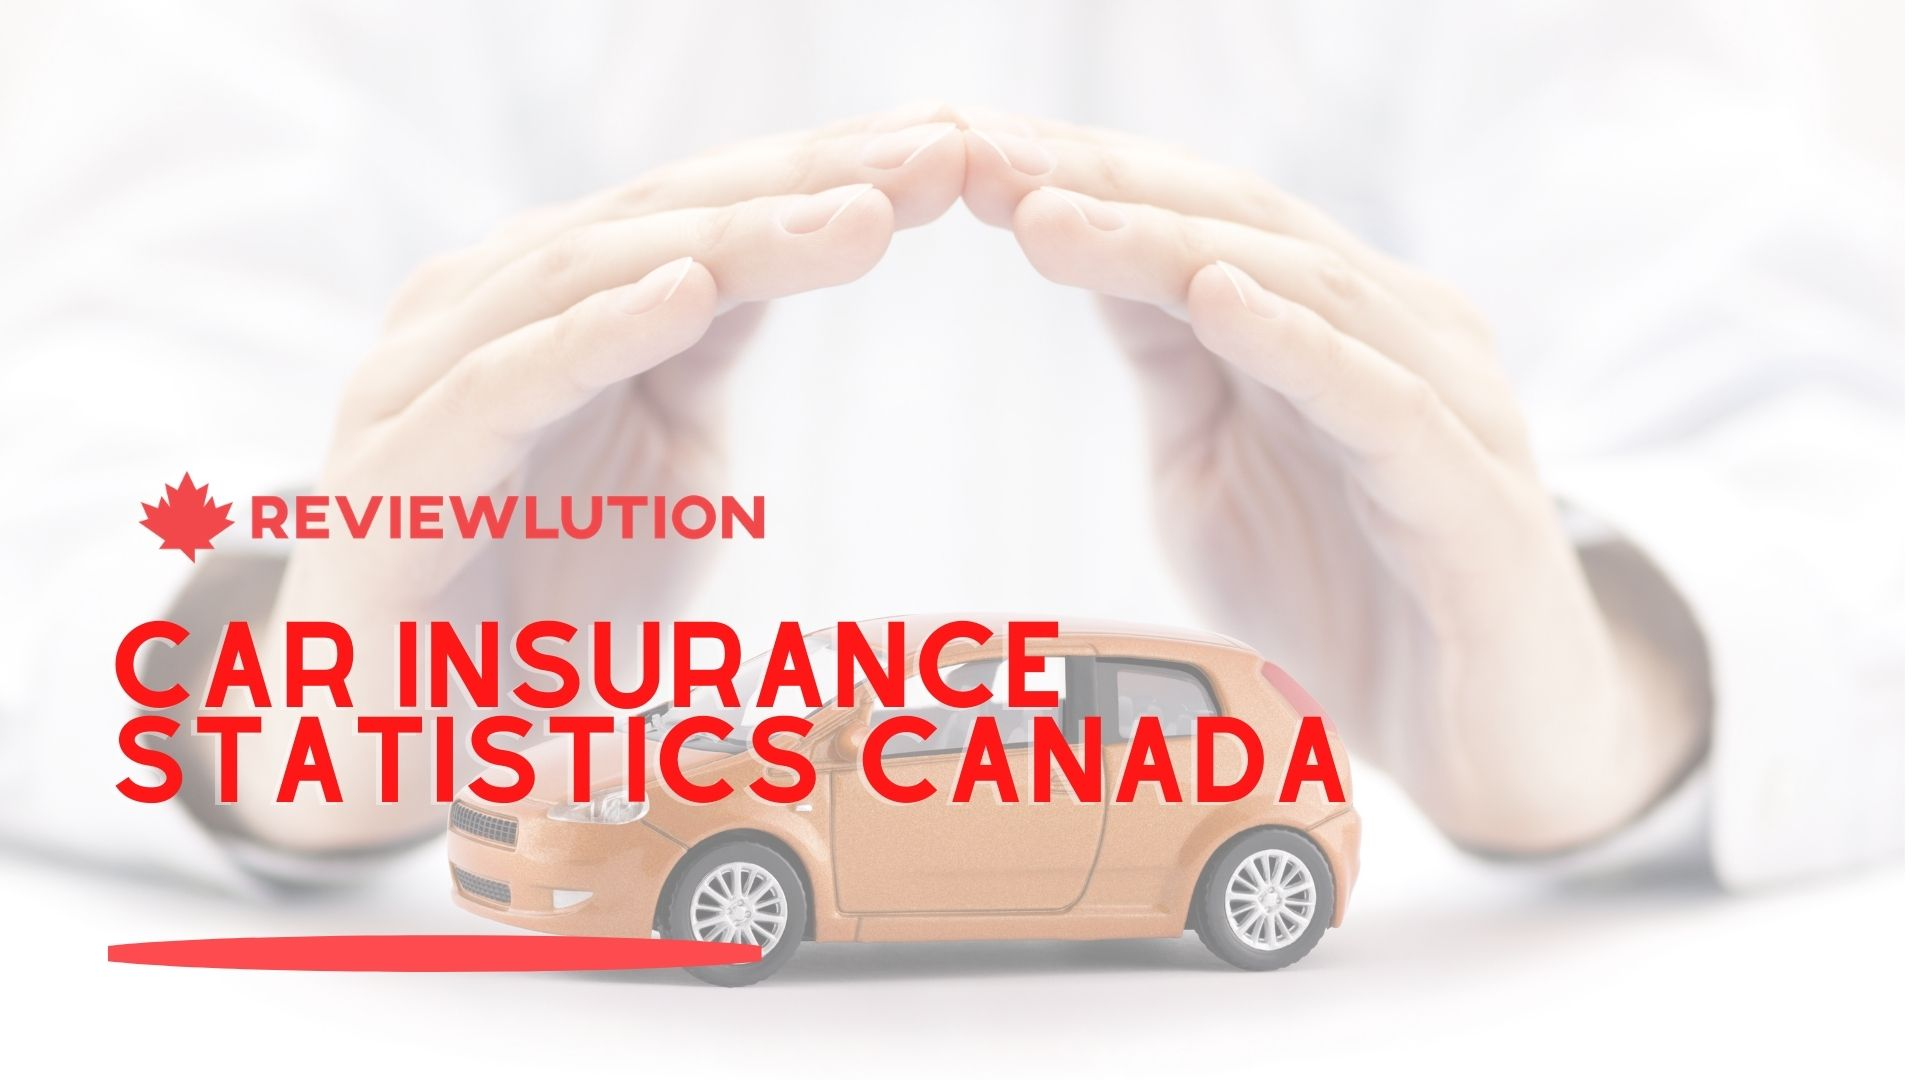 8 Car Insurance Statistics for Canada to Check out in 2021